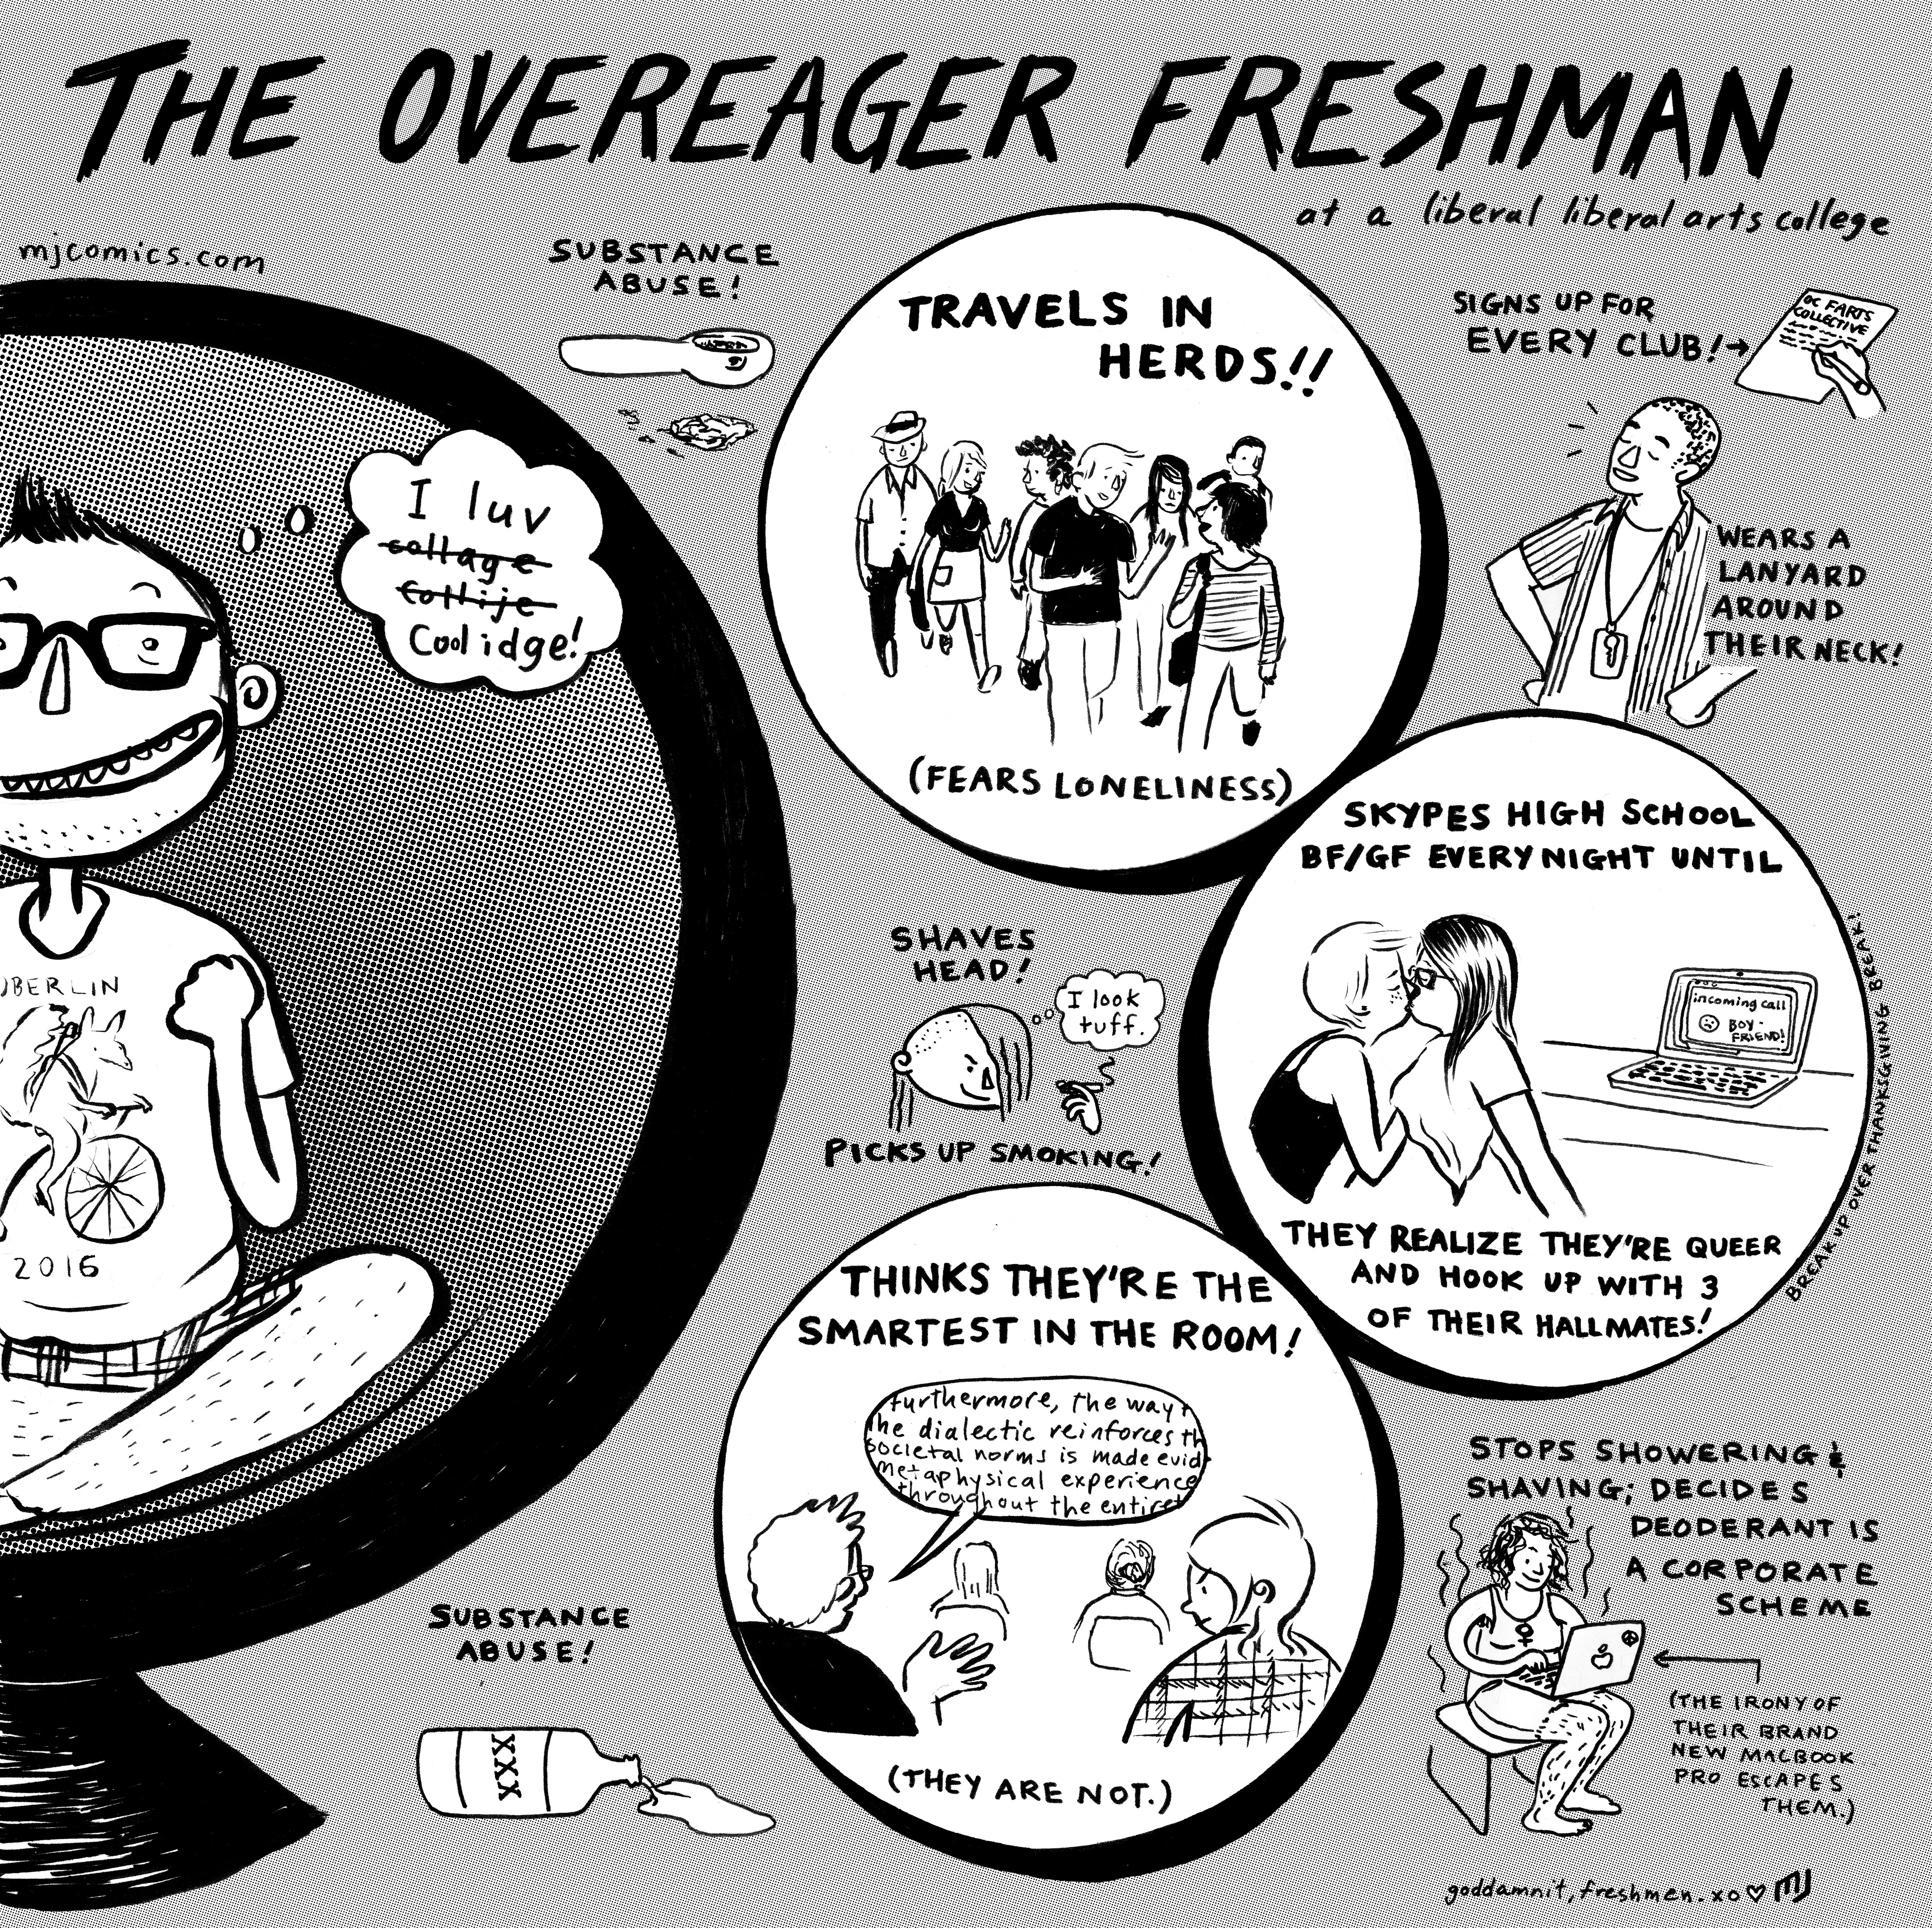 The Overeager Freshman